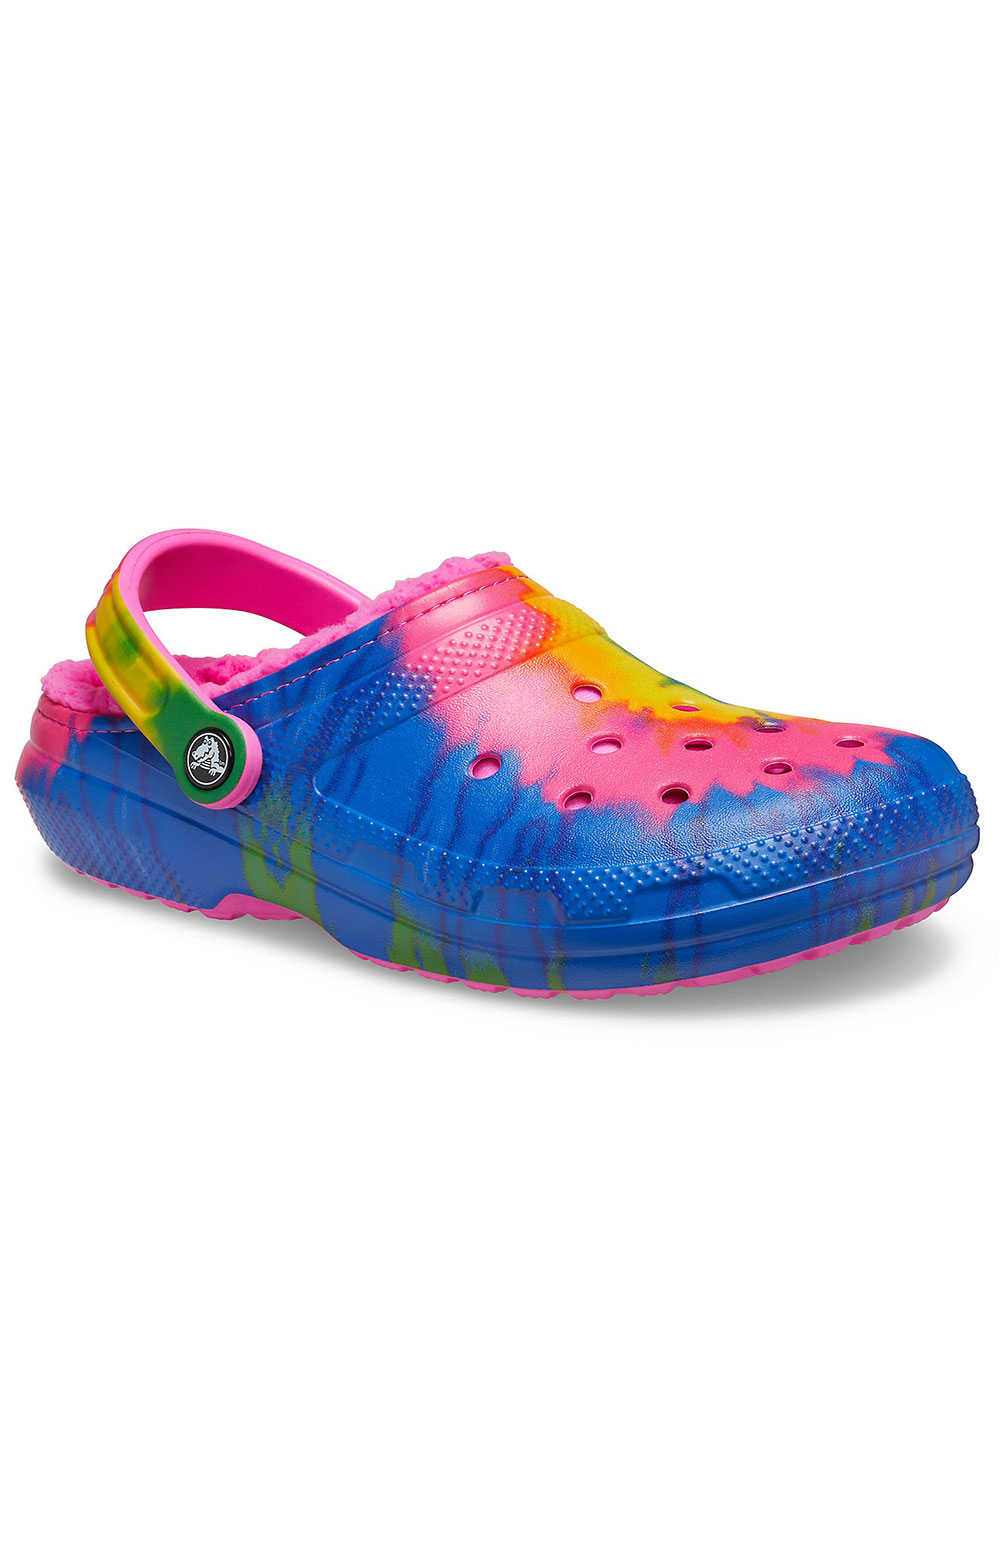 Classic Lined Tie-Dye Clogs - Electric Pink/Multi